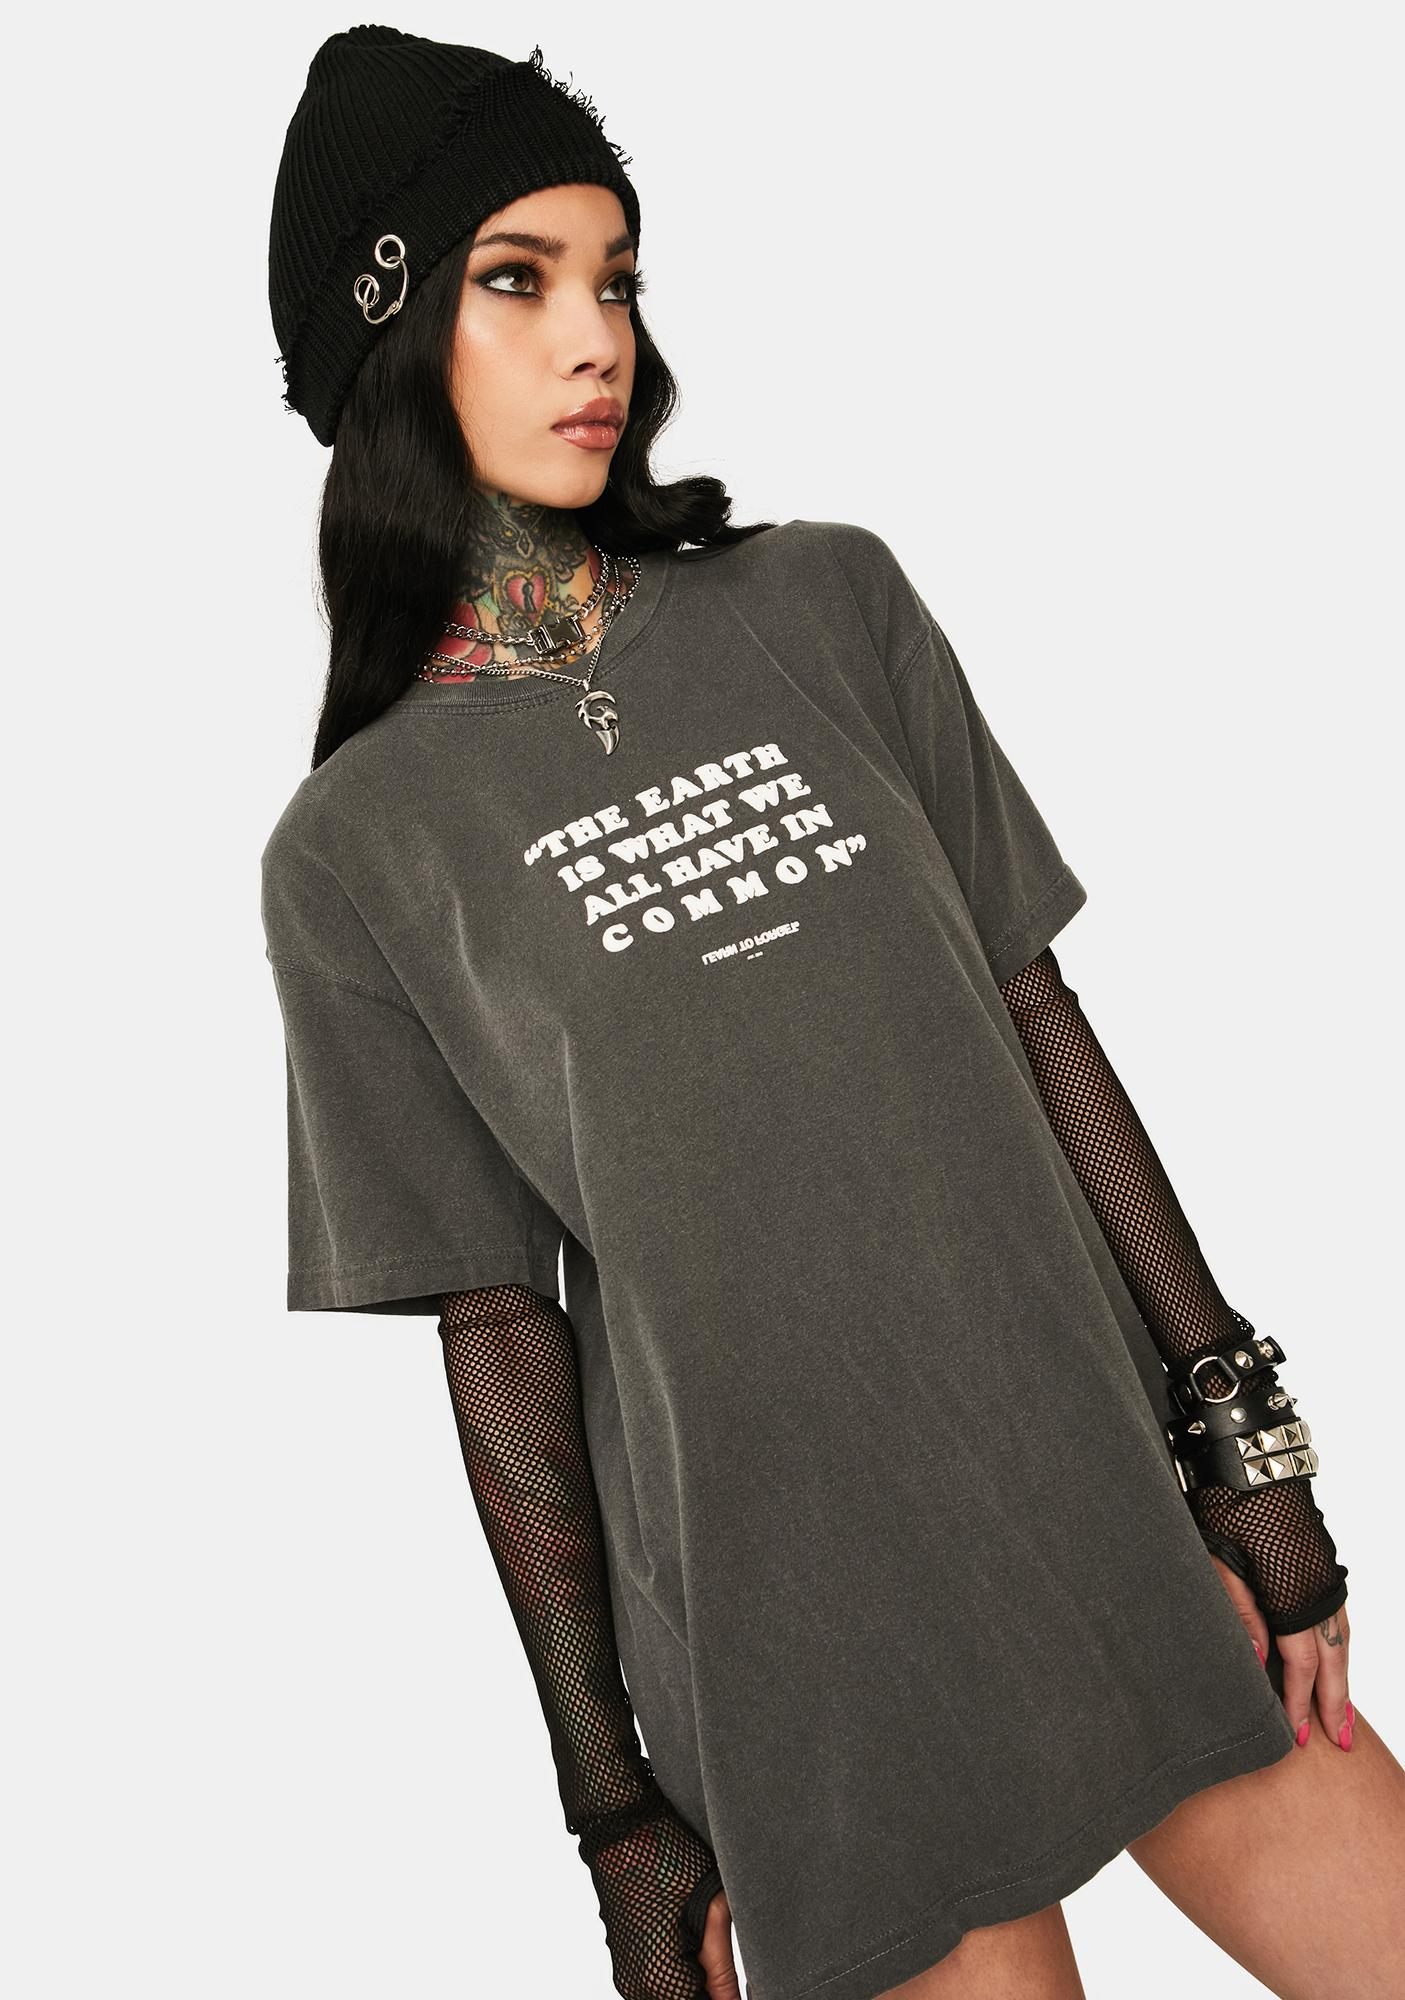 Learn To Forget Common Earth Premium Graphic Tee